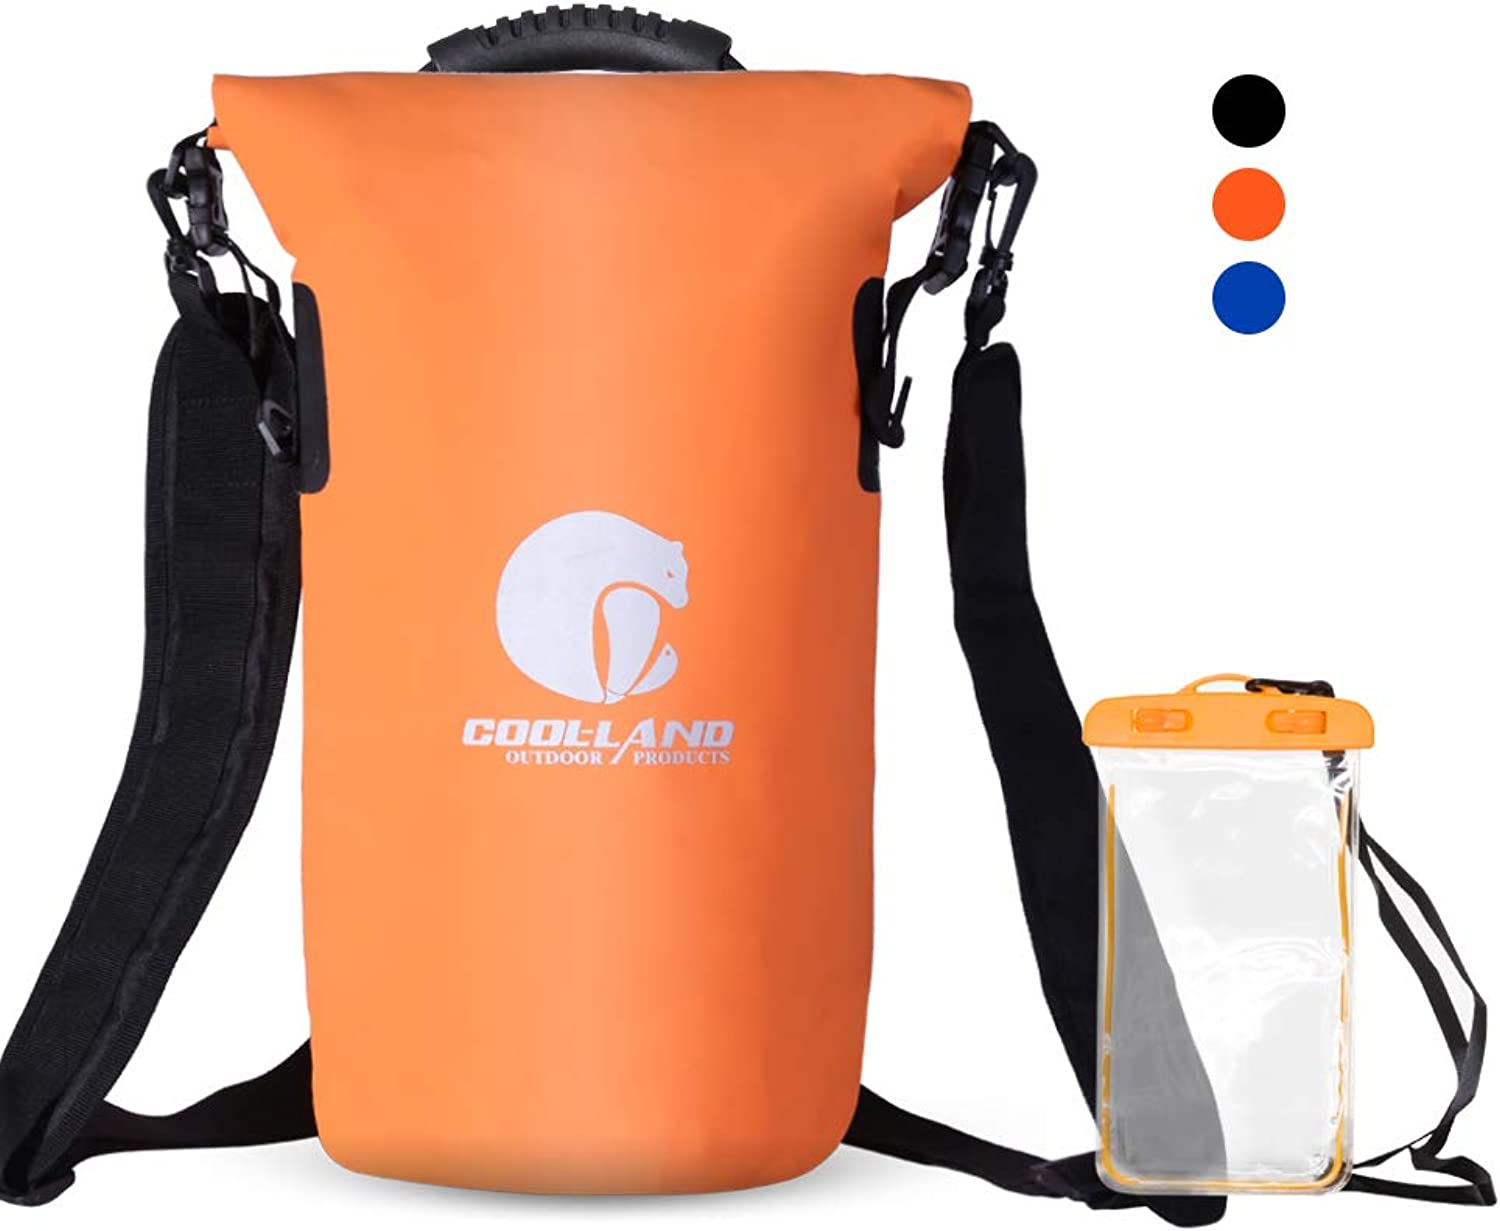 COOL LAND Waterproof Dry Bags  Roll Top Sack Hiking Backpack for Swimming, Kayaking, Boating, Rafting, Camping with Waterproof Phone Case